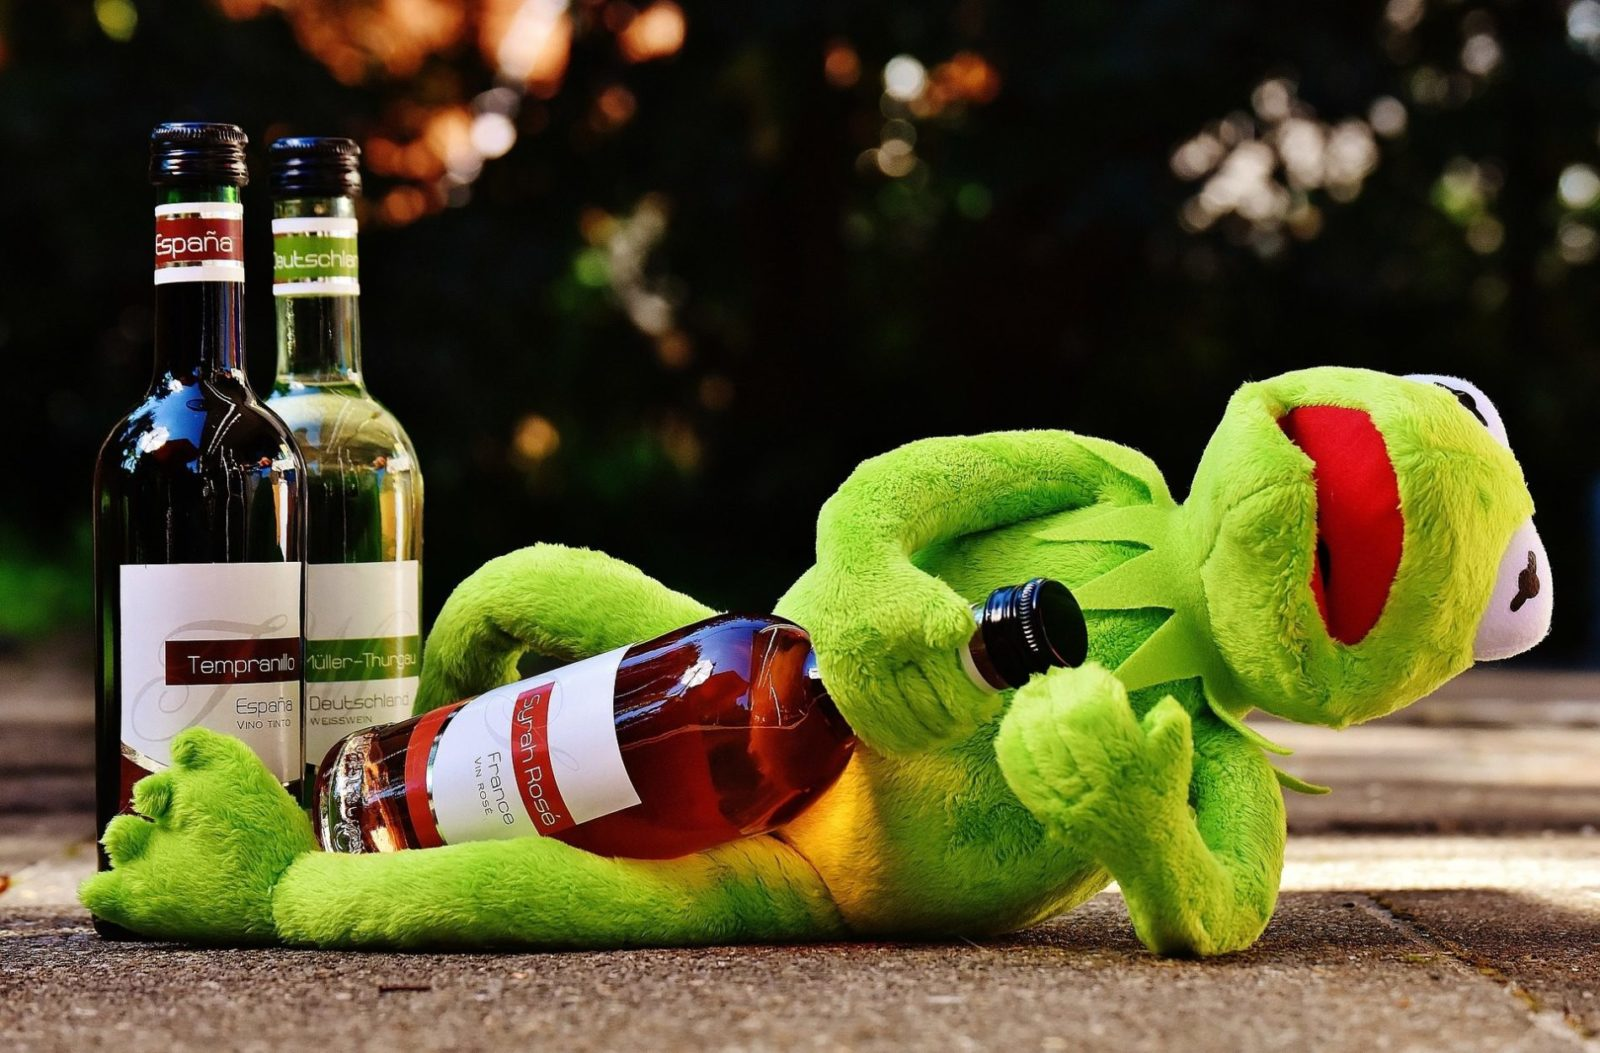 Kermit Named New Ambassador For Tempranillo Wine